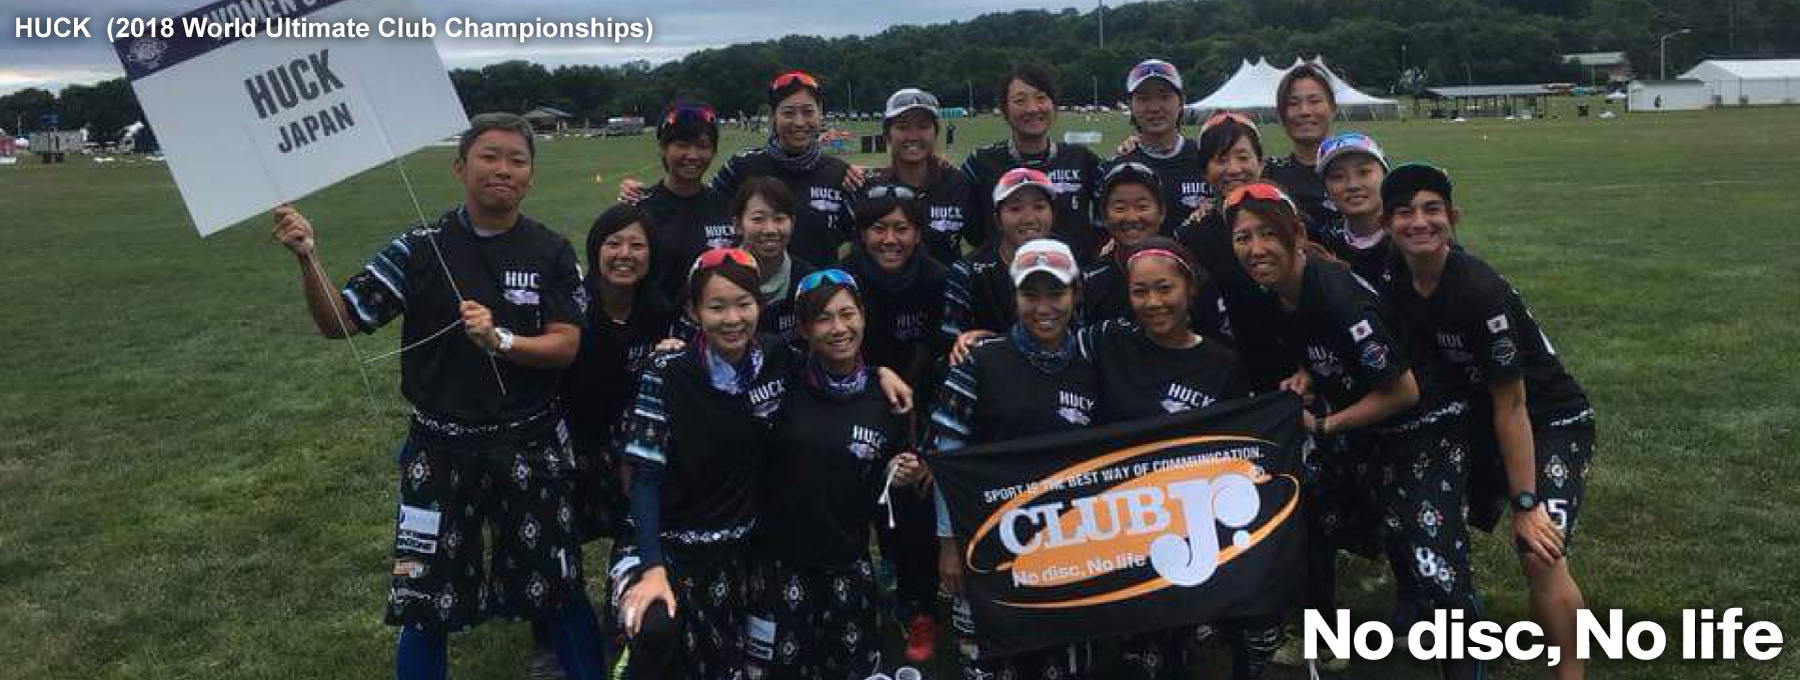 HUCK (2018 World Ultimate Club Championships)